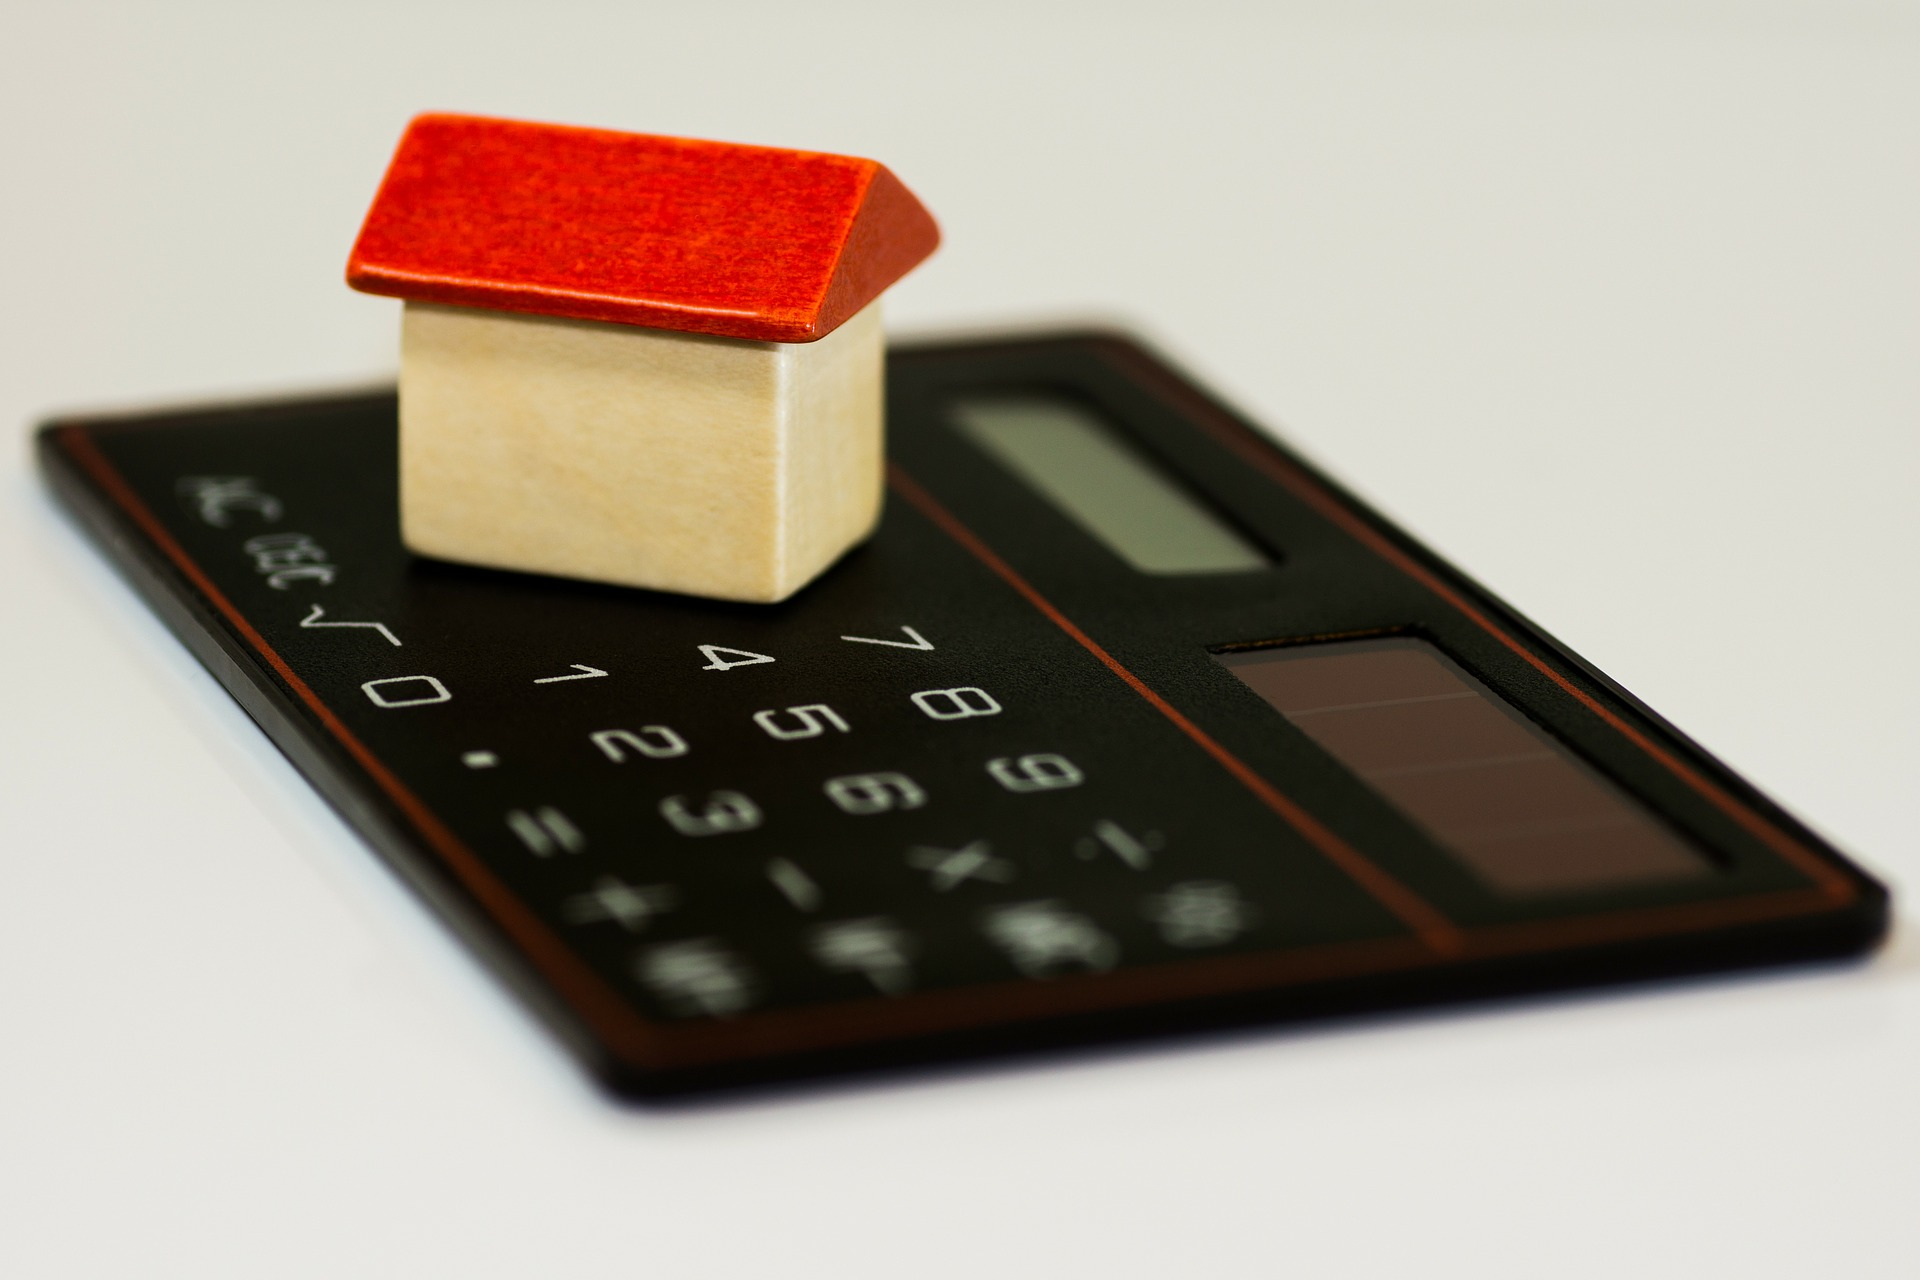 Interested in Rental Property? Top Myths About the Rental Business